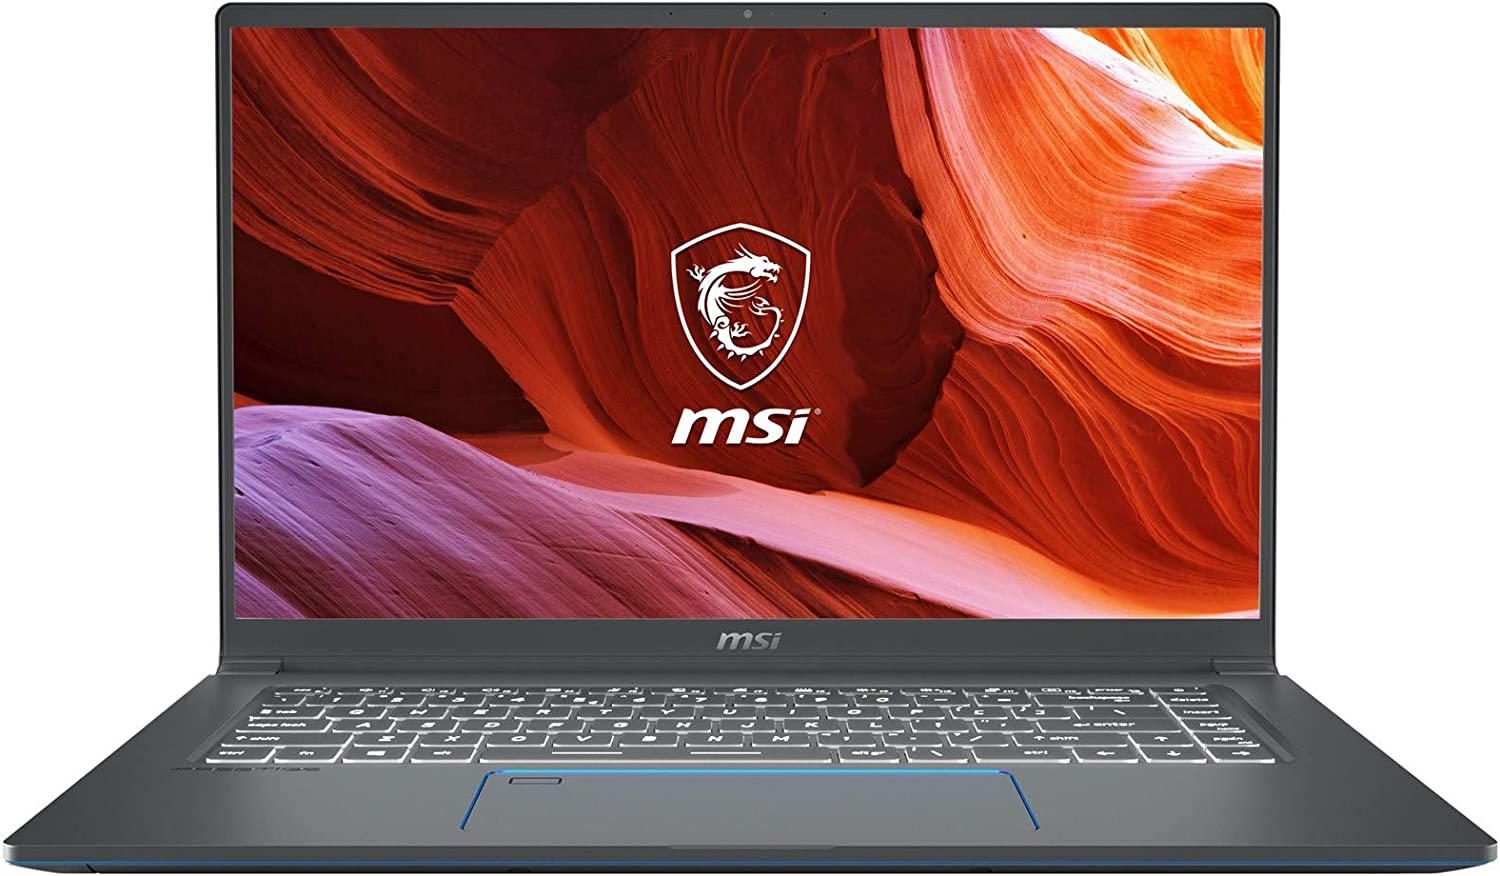 "MSI Prestige 15 A10SC-011 15.6"" Ultra Thin and Light Professional Laptop Intel Core i7-10710U GTX1650 MAX-Q 16GB DDR4 512GB NVMe SSD Win10Pro"